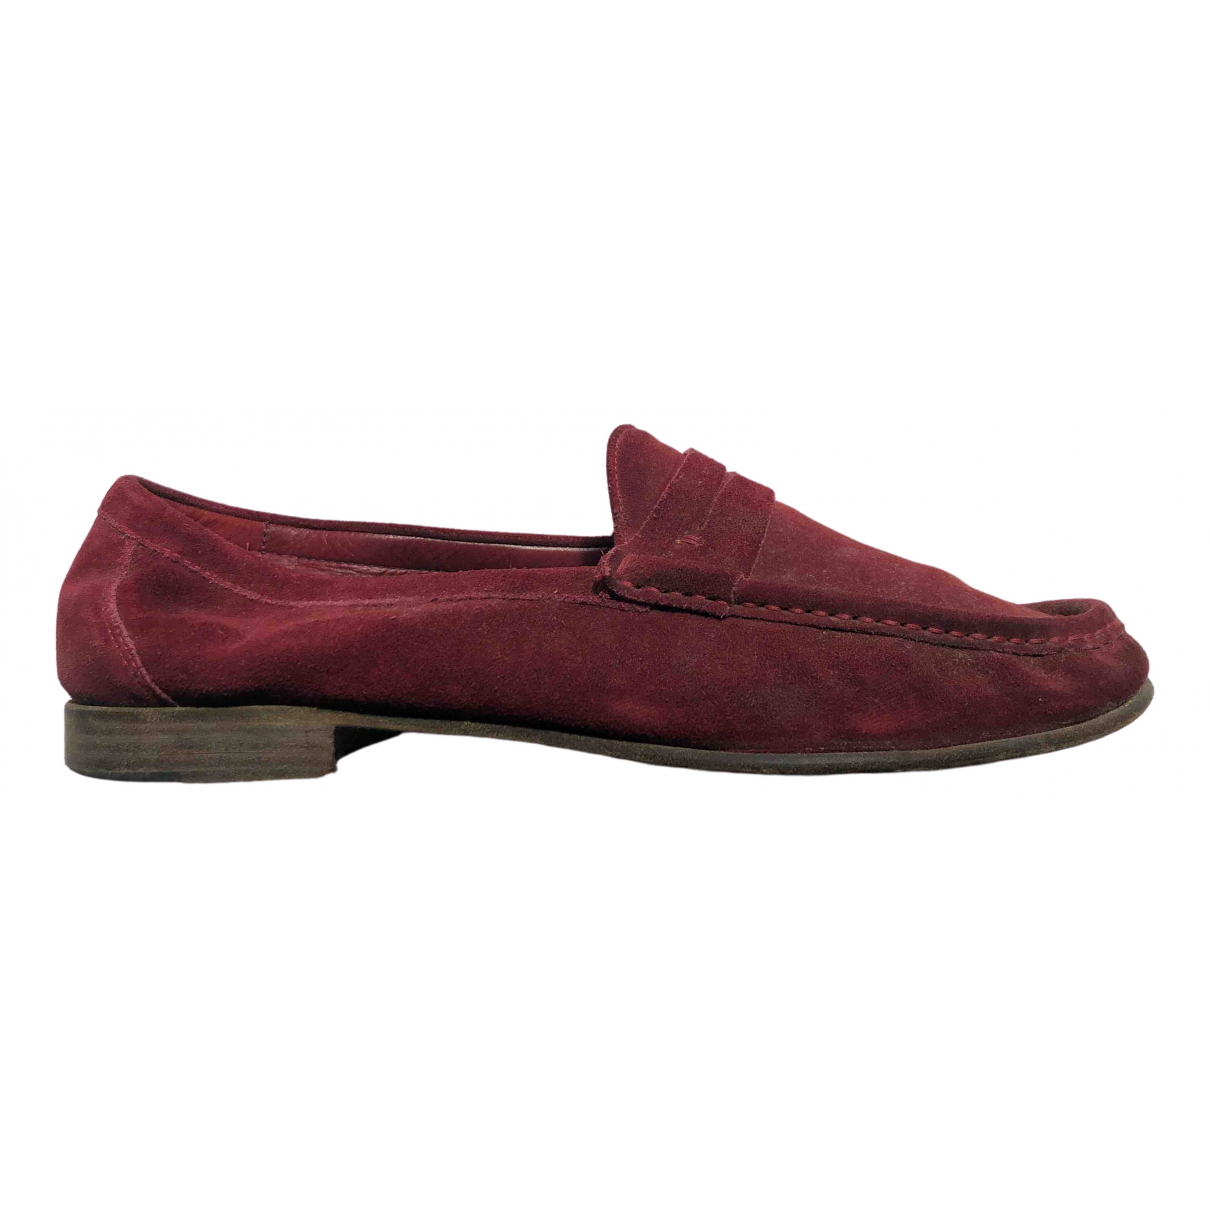 Sergio Rossi \N Burgundy Suede Flats for Men 44 EU